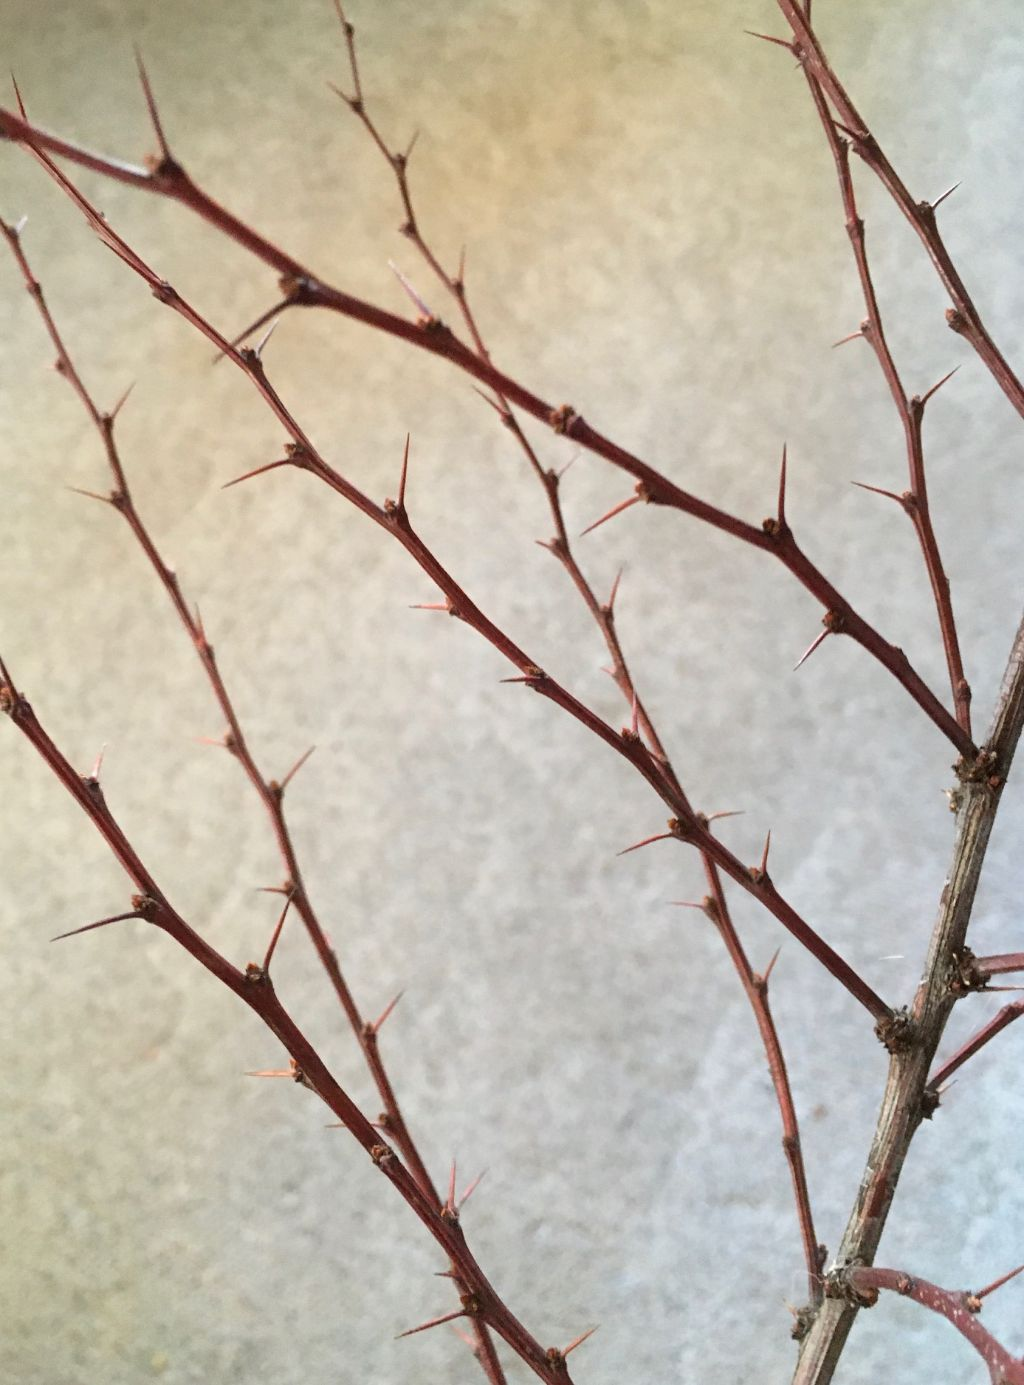 A thorny barberry bush branch